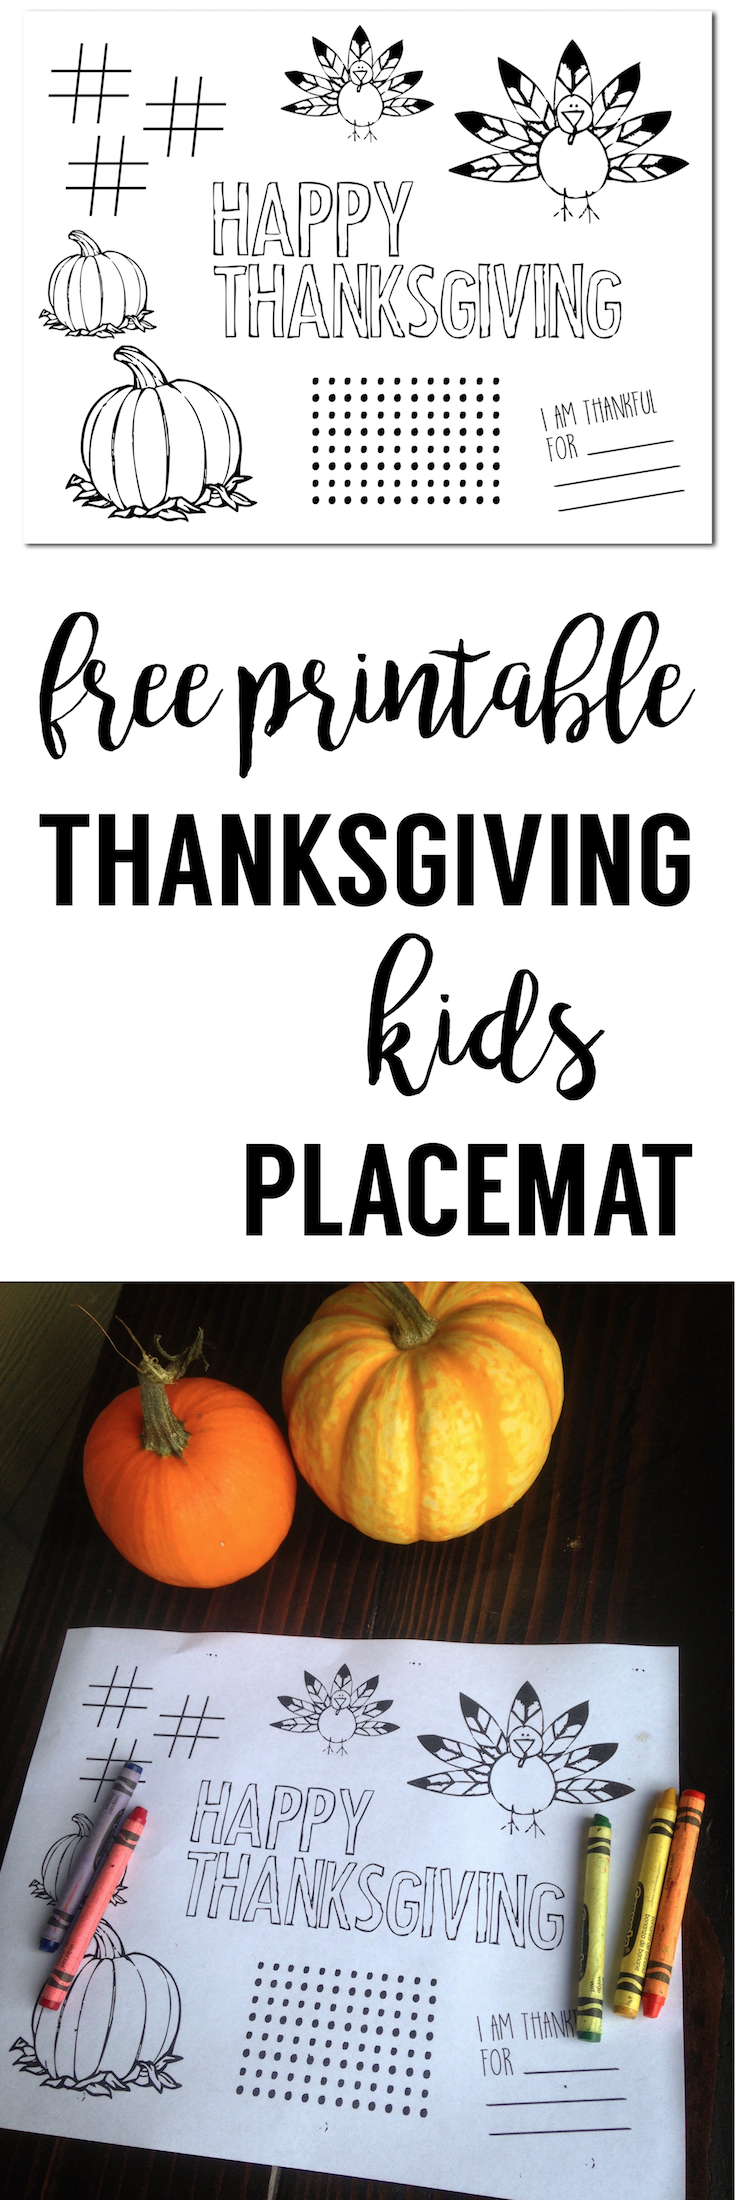 Thanksgiving Placemat Free Printable. Print out this Thanksgiving kids activity page for the kids.